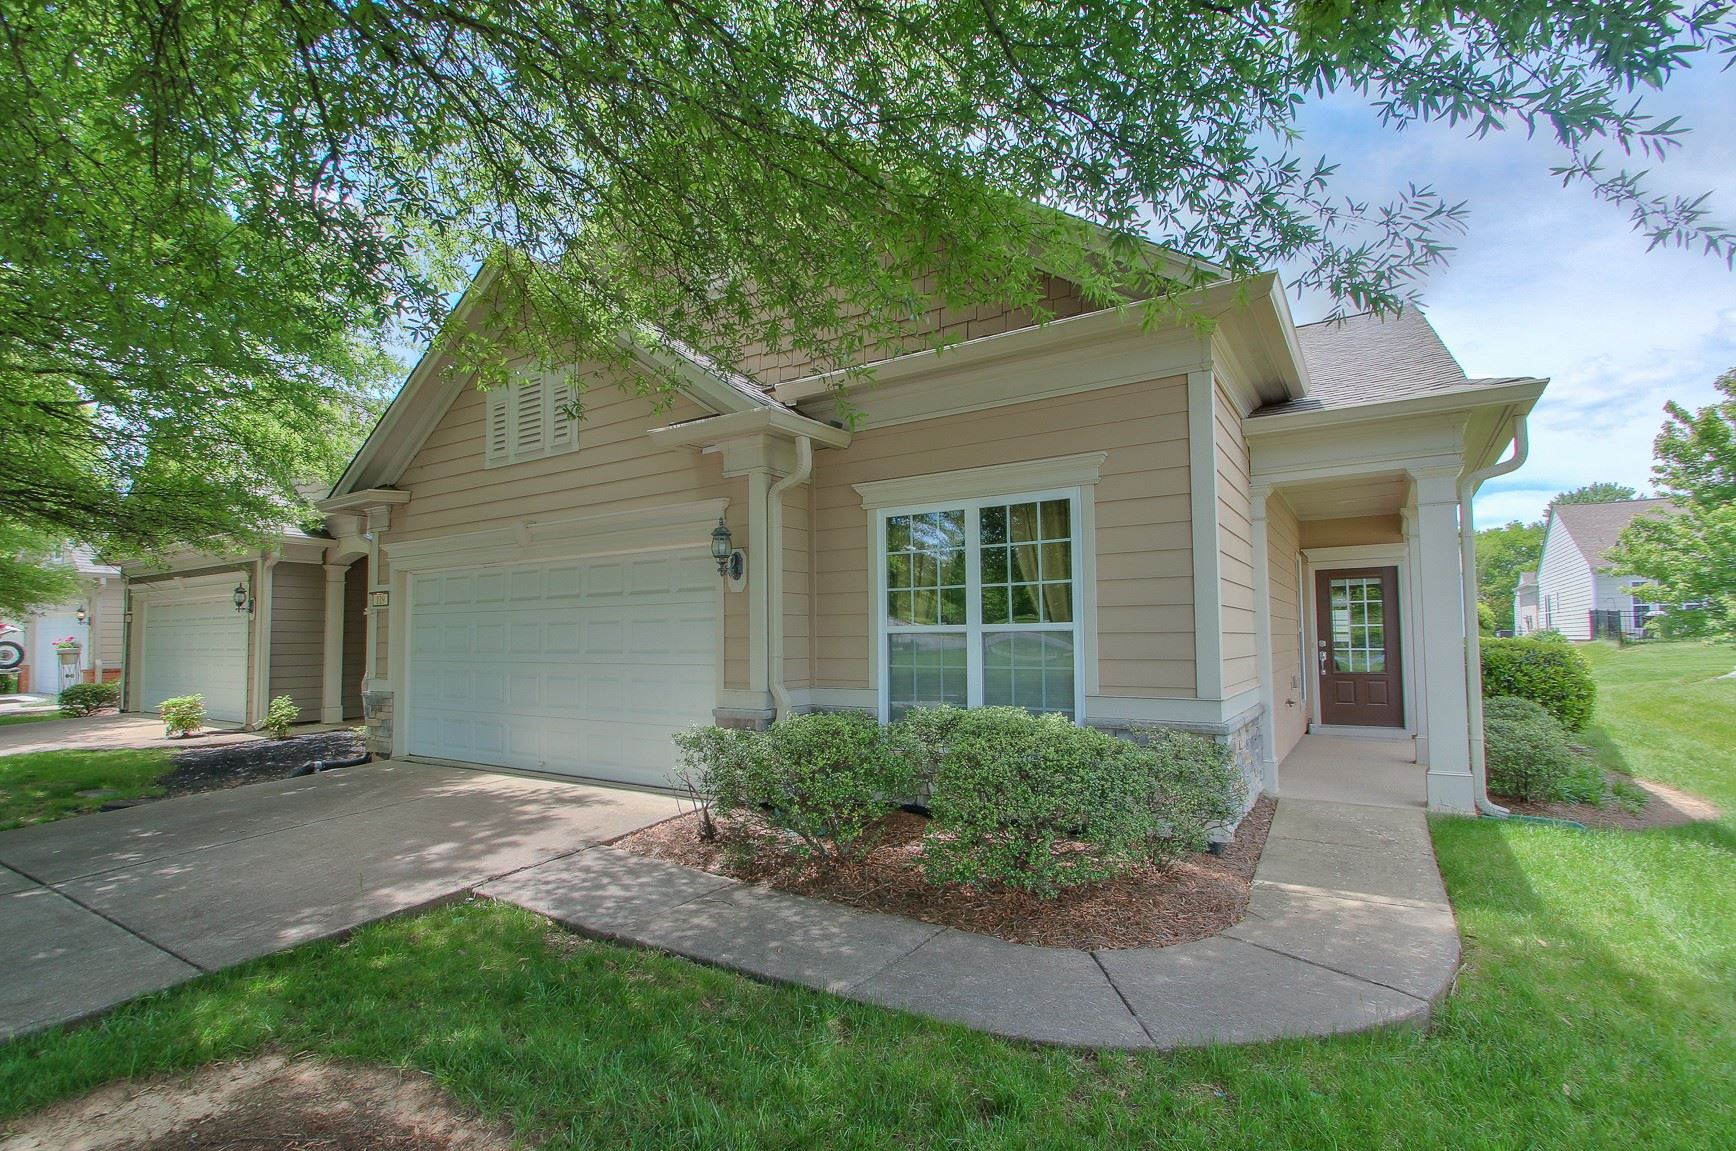 119 Old Towne Dr, Mount Juliet, TN 37122 - MLS#: 2254146